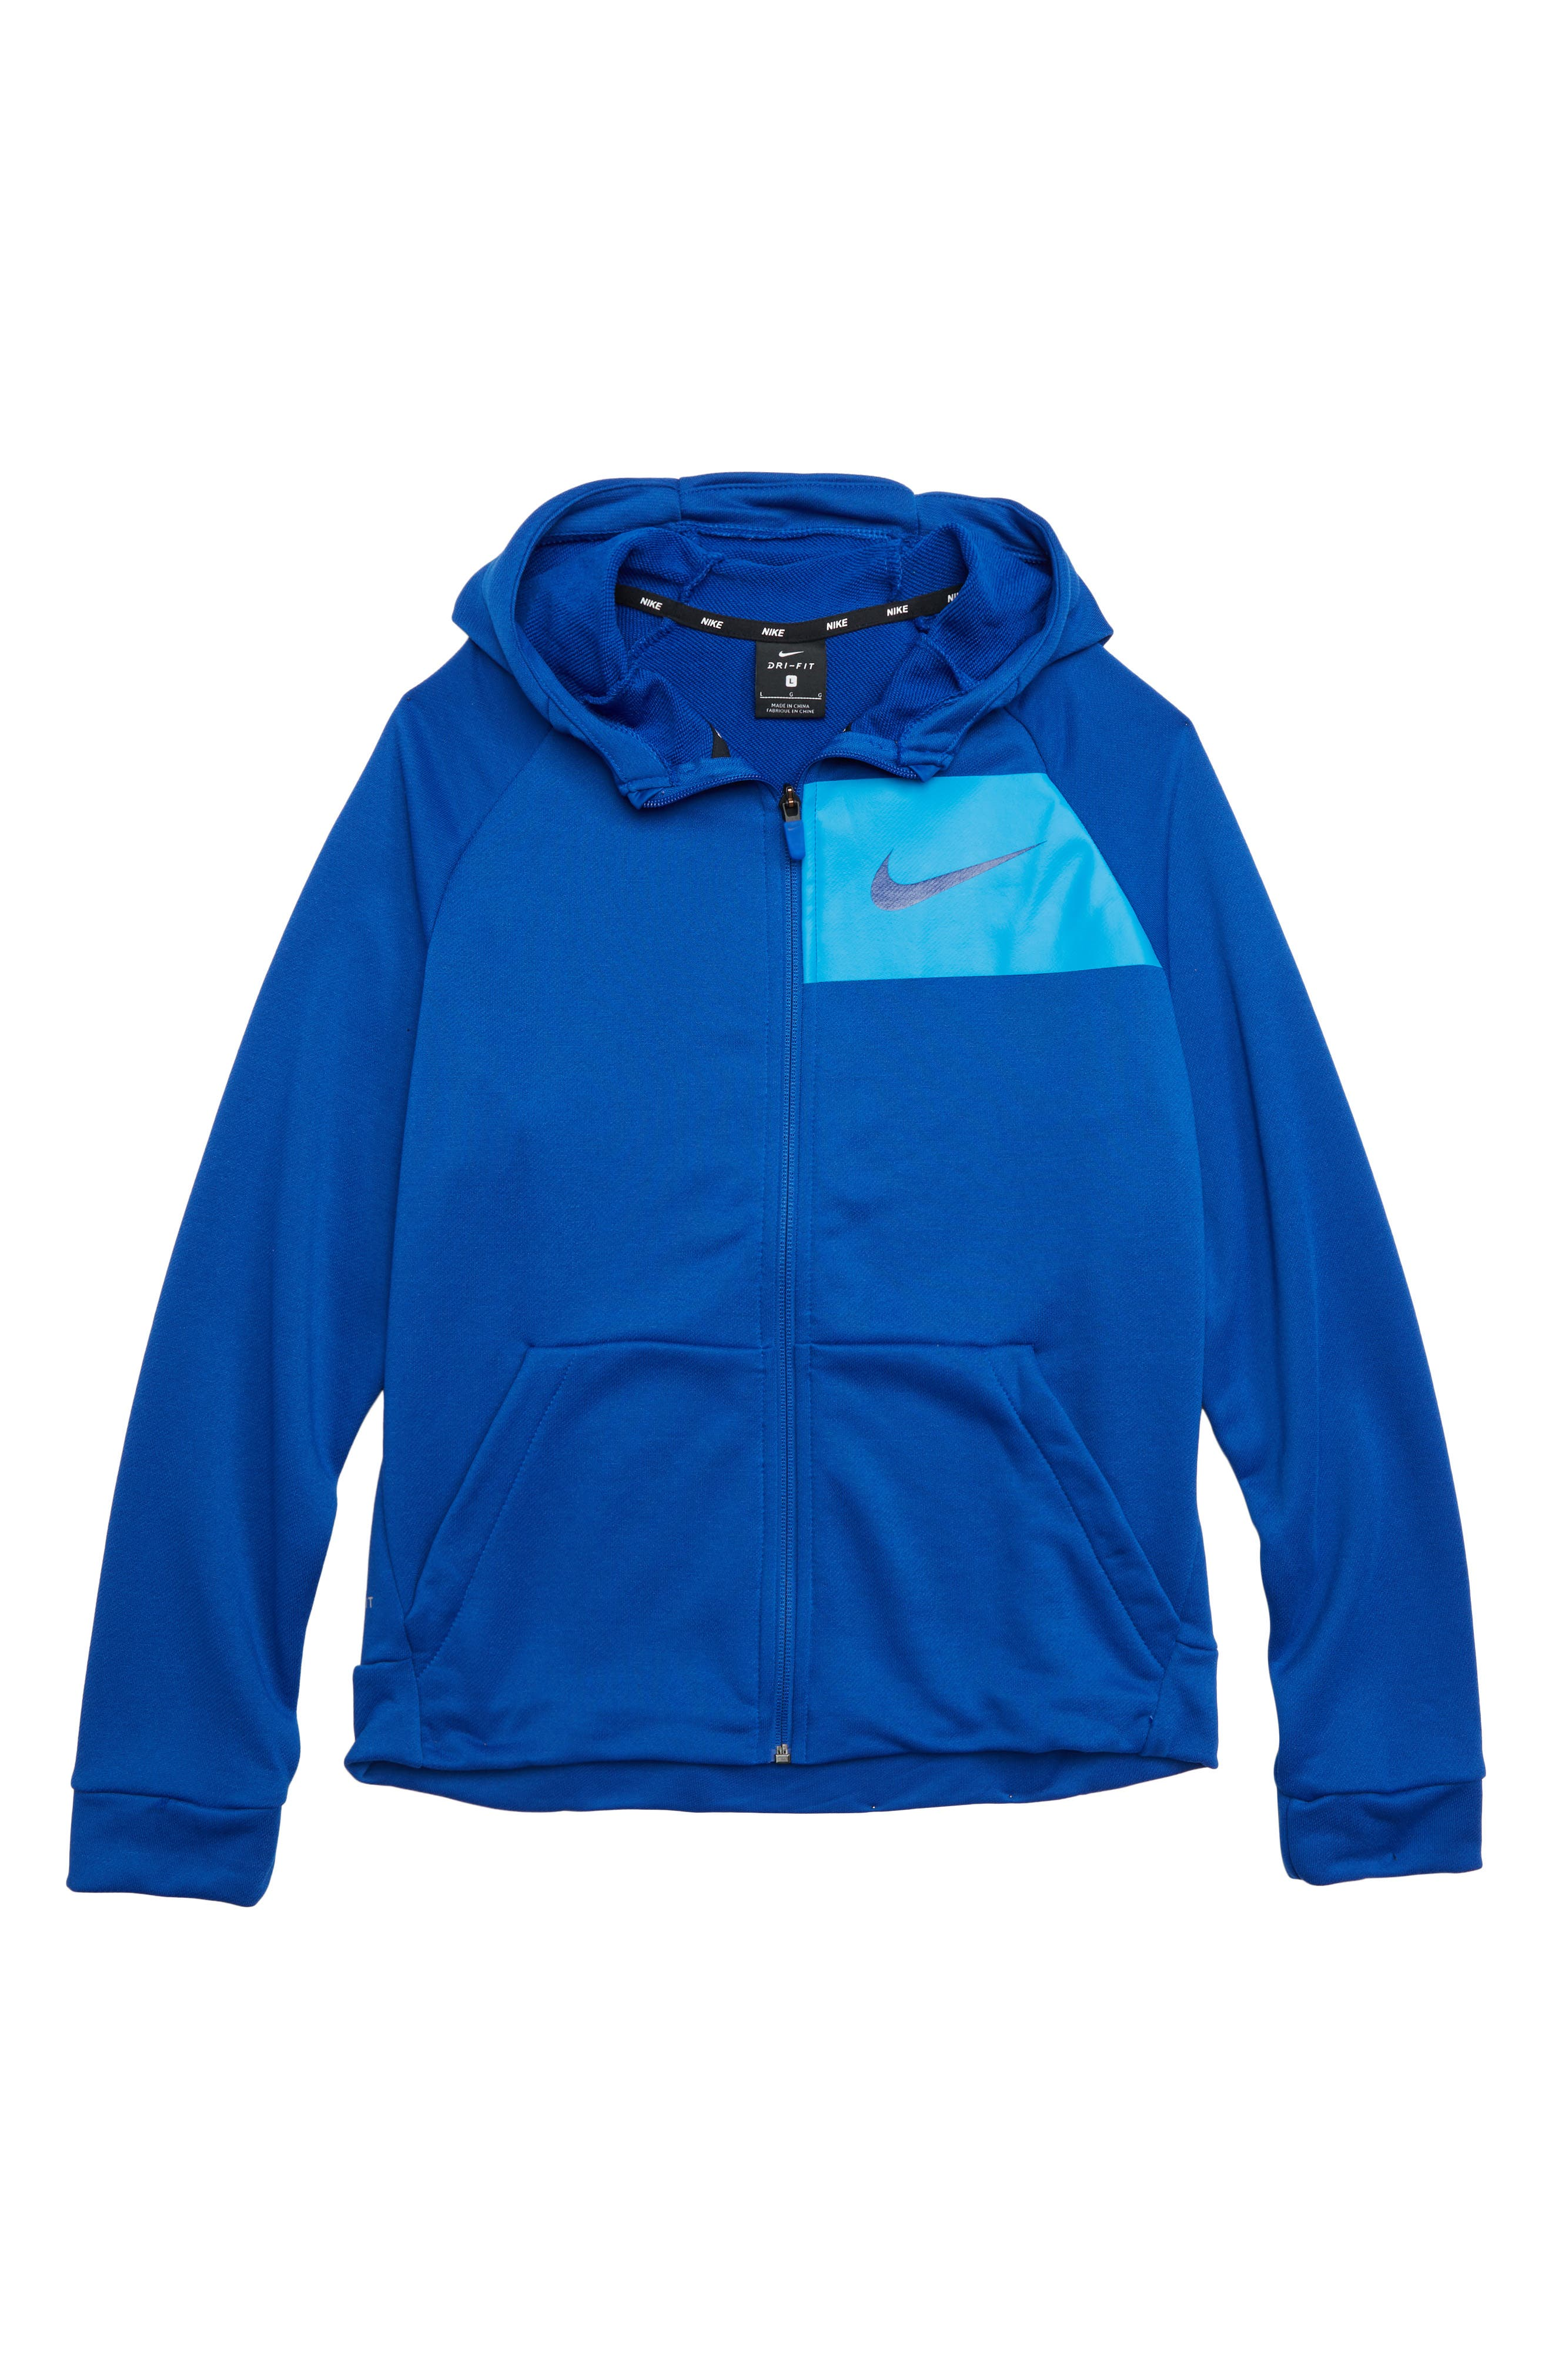 Dry Full Zip Hoodie,                         Main,                         color, GAME ROYAL/ BLUE HERO